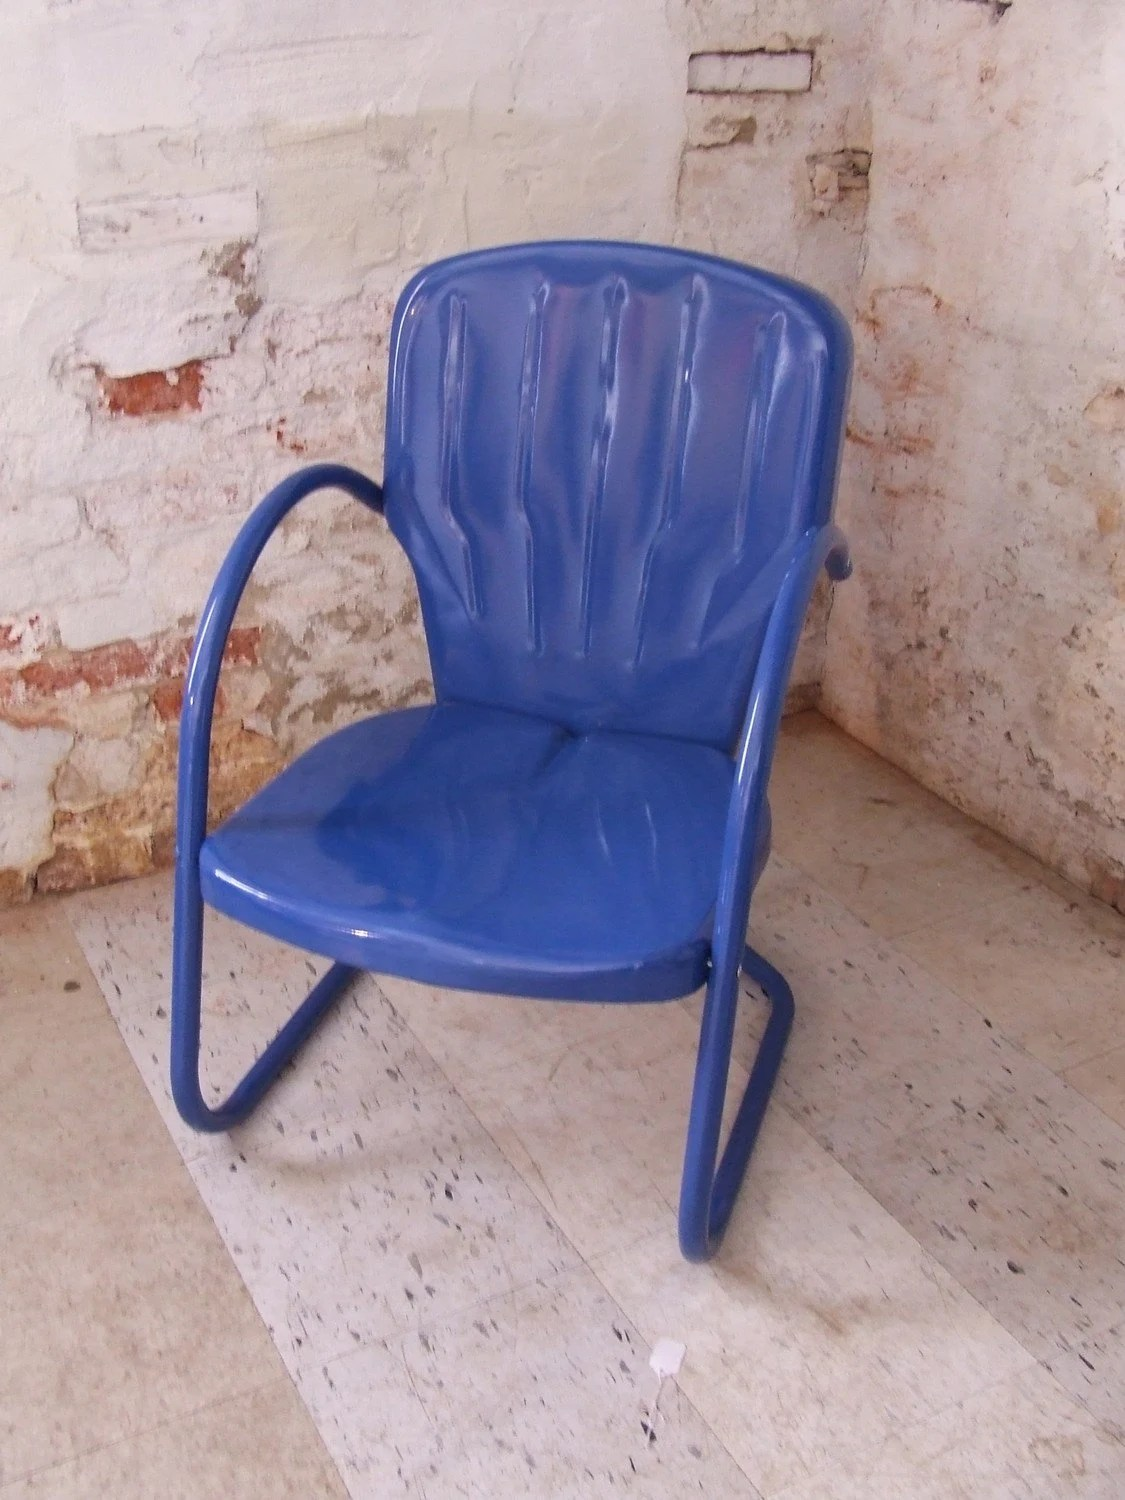 old fashioned metal lawn chairs outdoor papasan chair royal blue vintage shell back